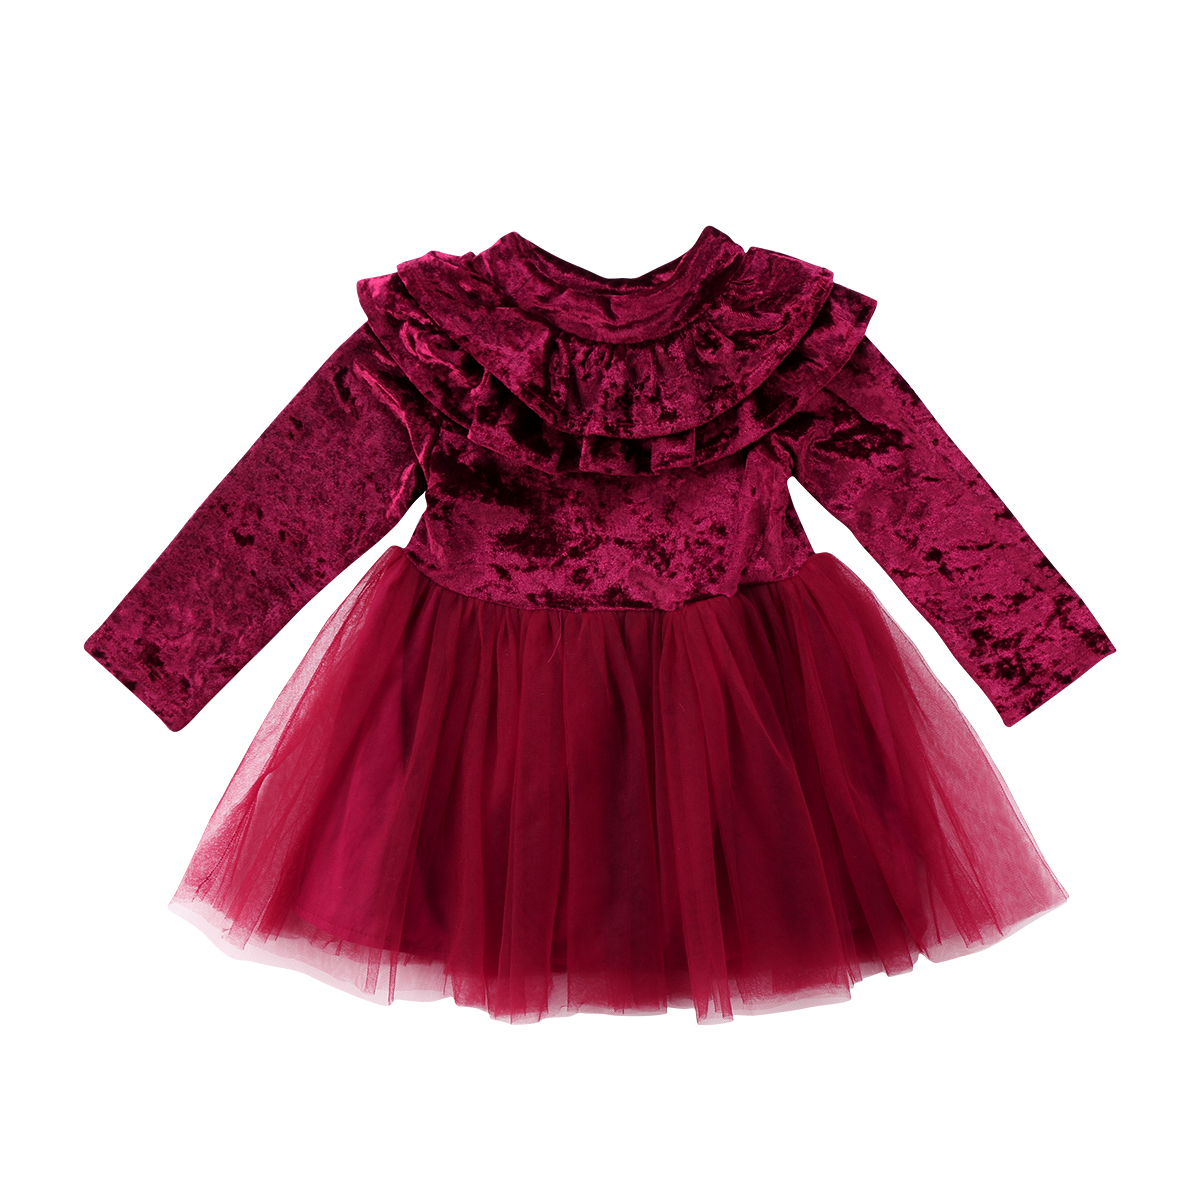 Toddler Infant Baby Girls Bell Sleeve Solid Velour Dress Outfits Clothes Dress